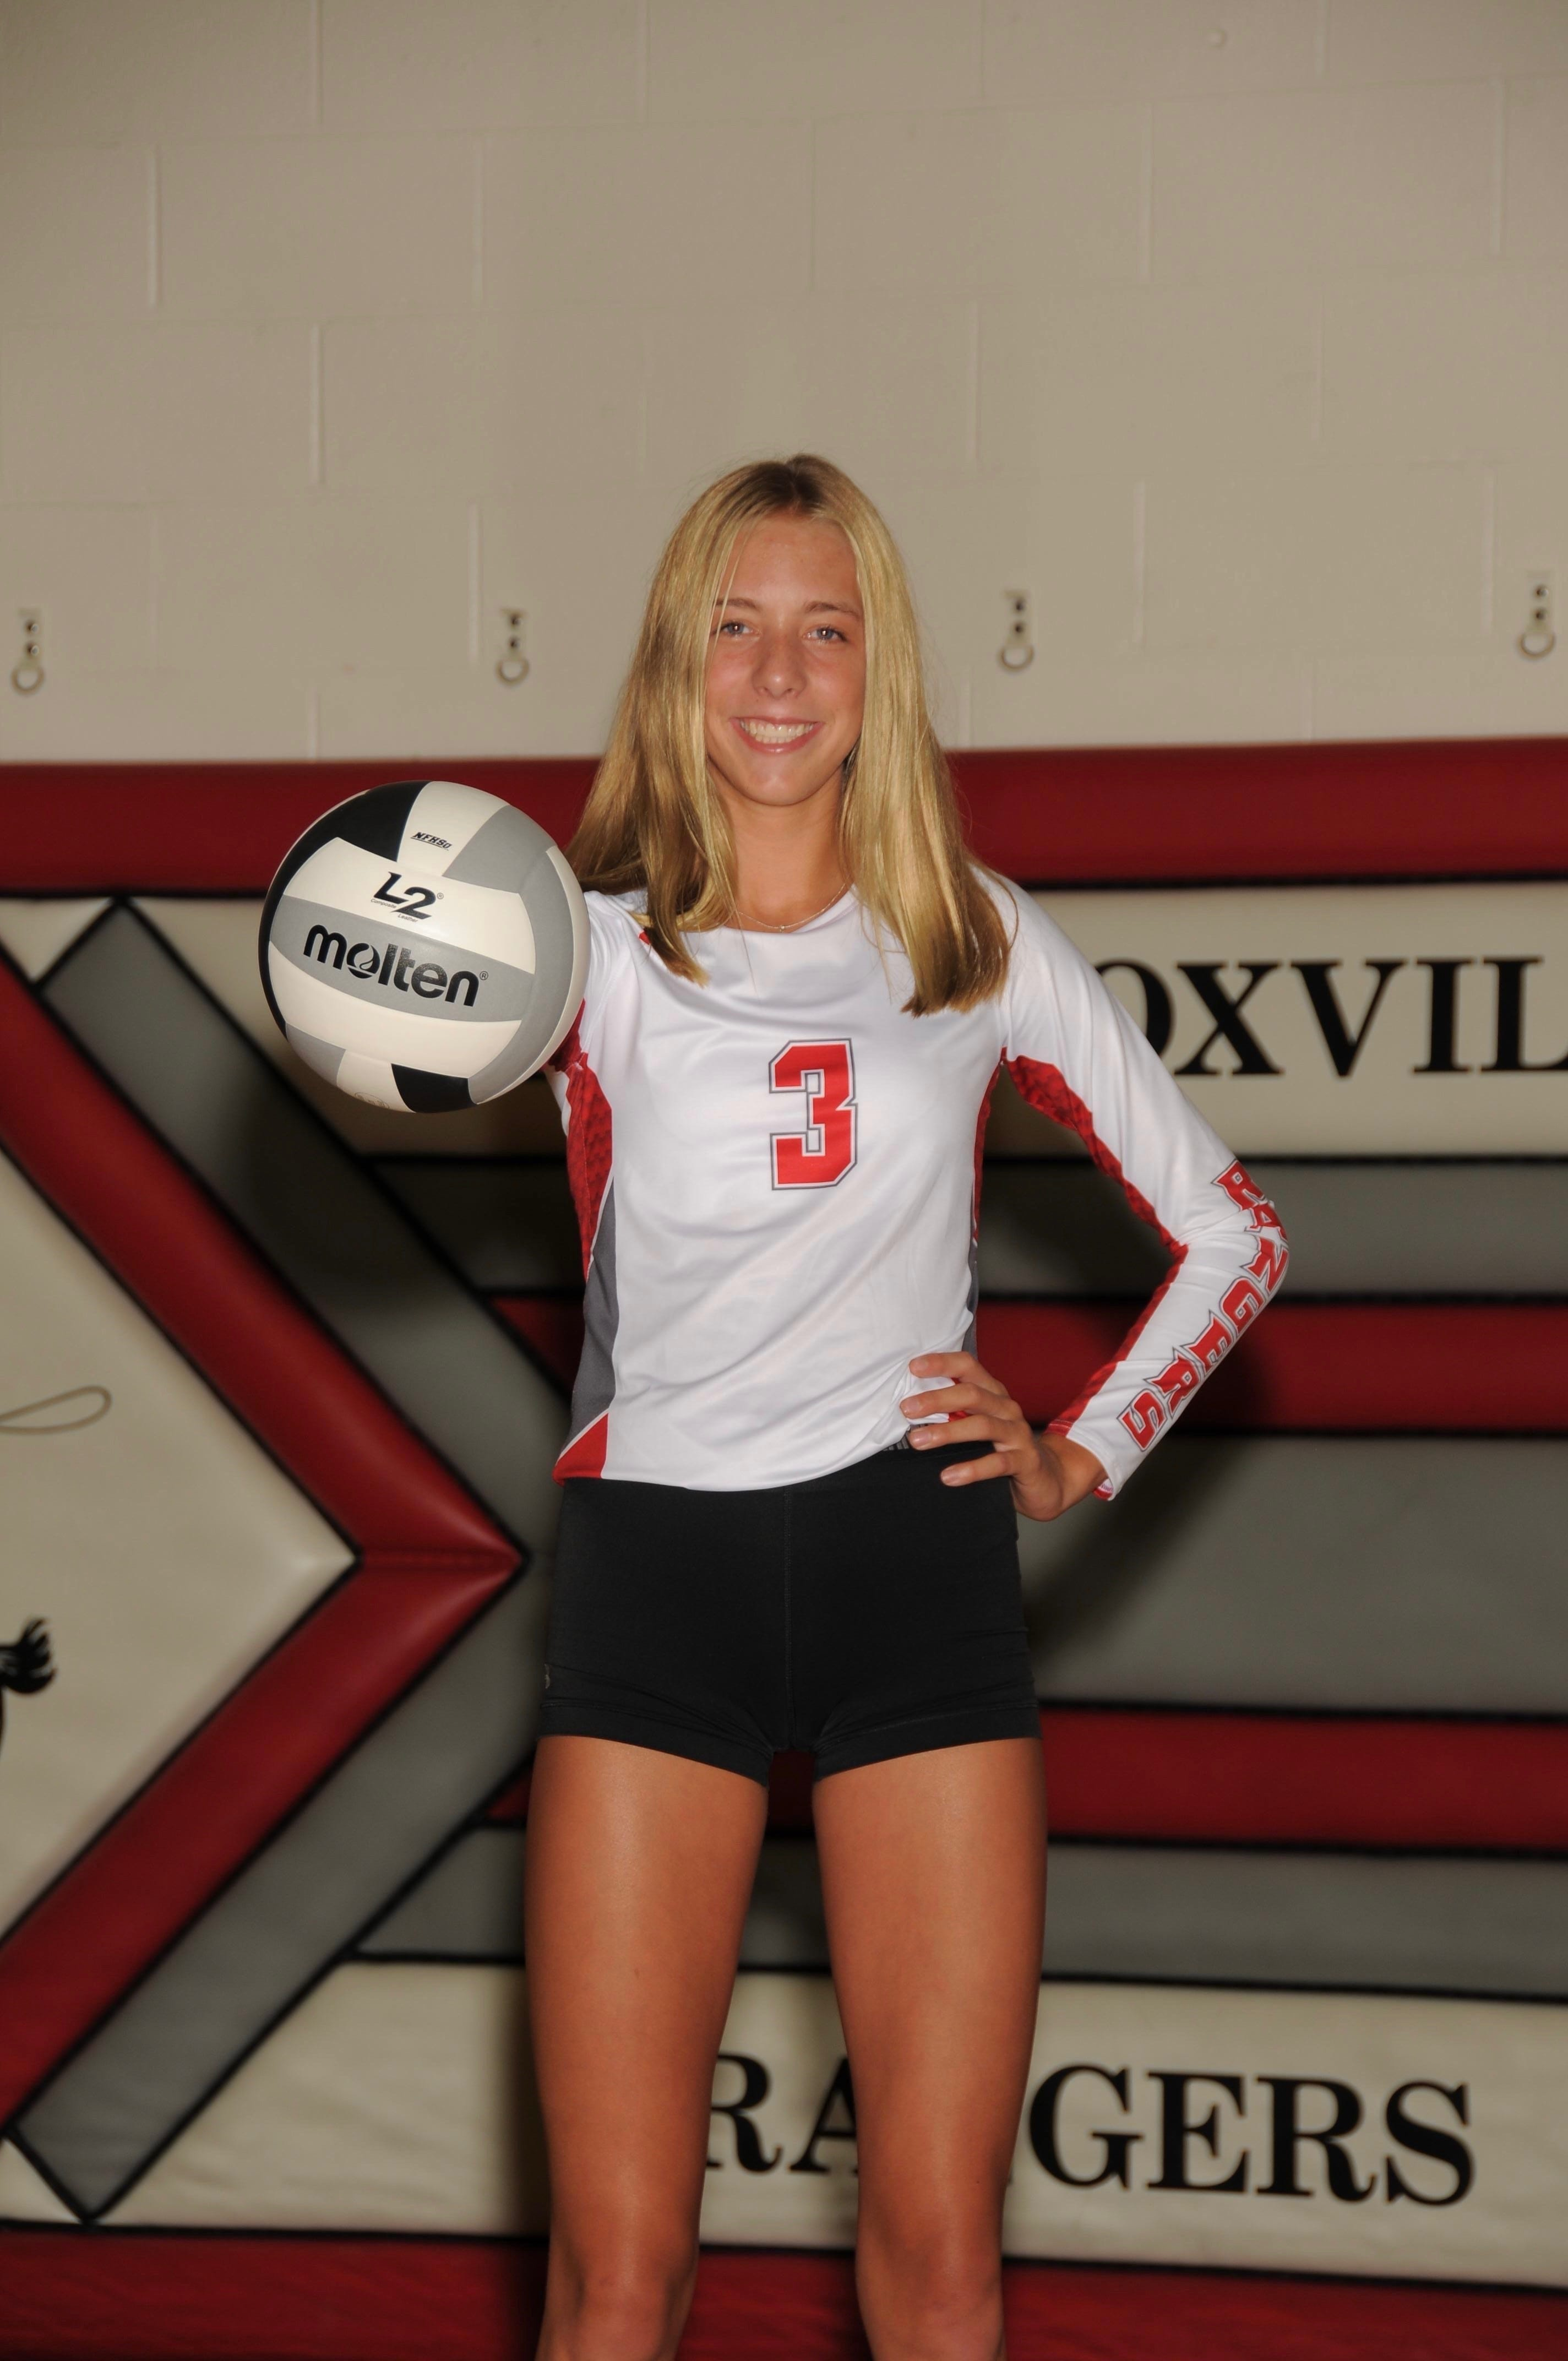 Carsyn Henschen of New Knoxville  is one of the best volleyball players in the state